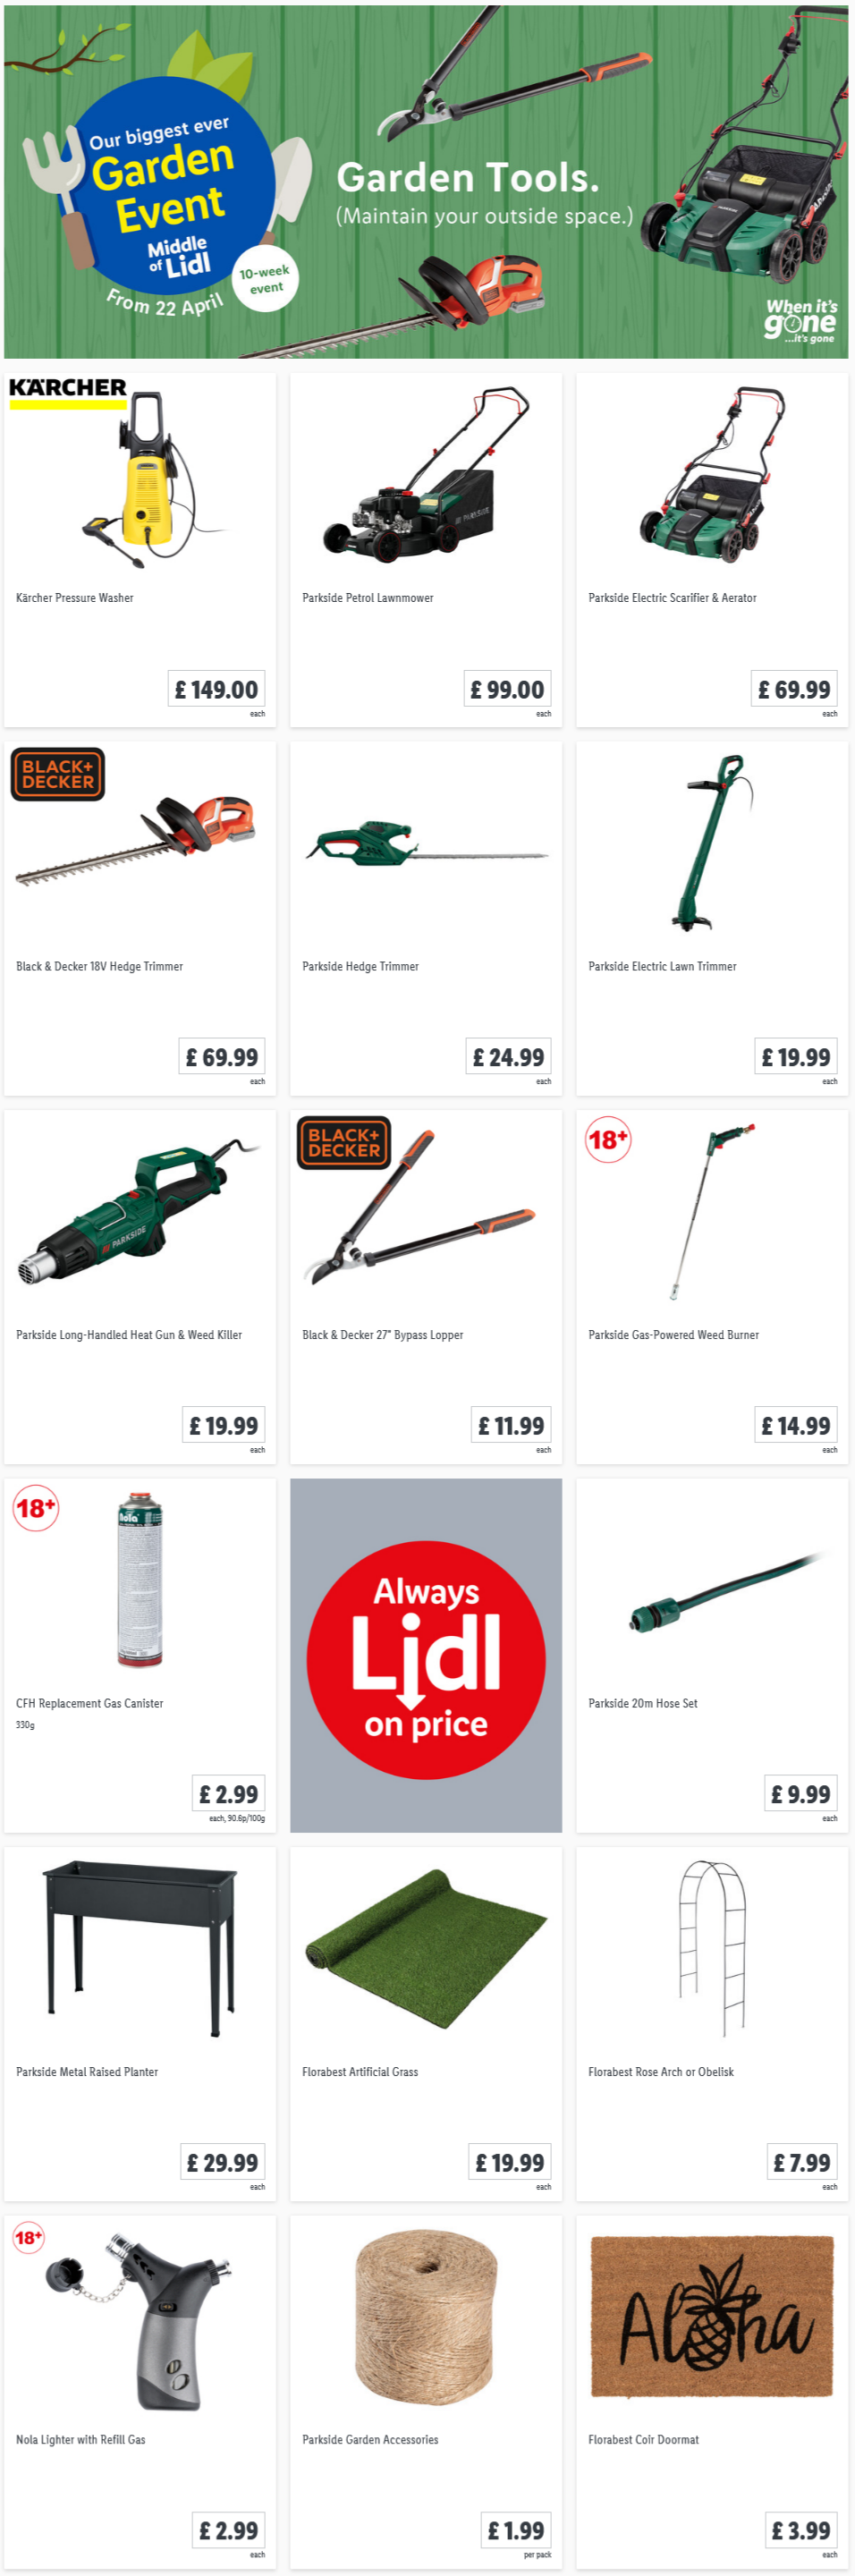 LIDL Offers this Thursday Garden Tools From 22nd April 2021